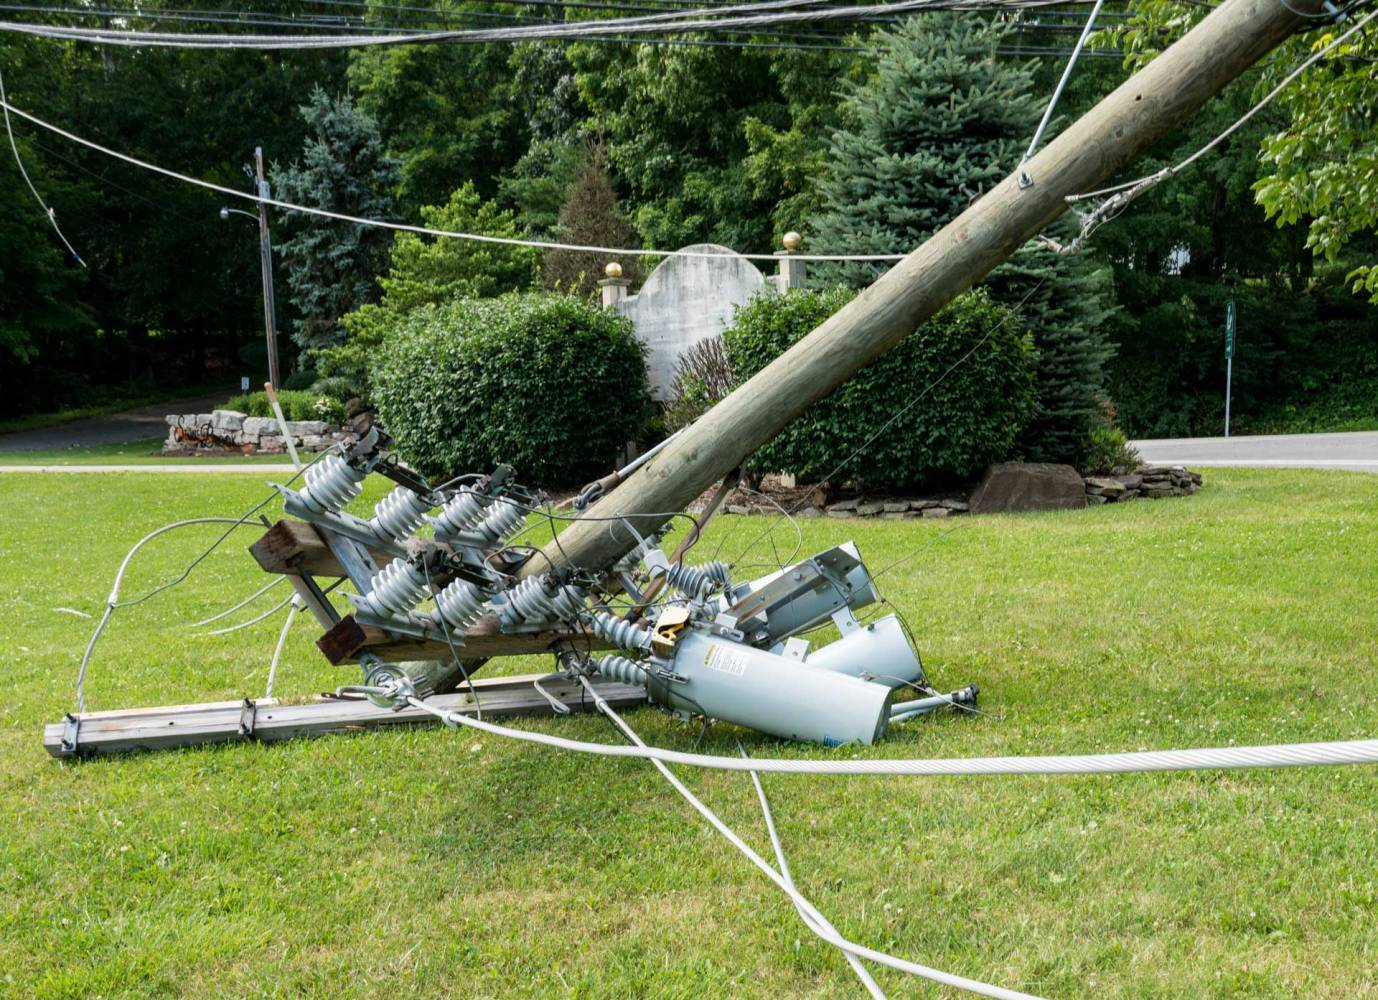 Image of broken power pole time for a back up power generator